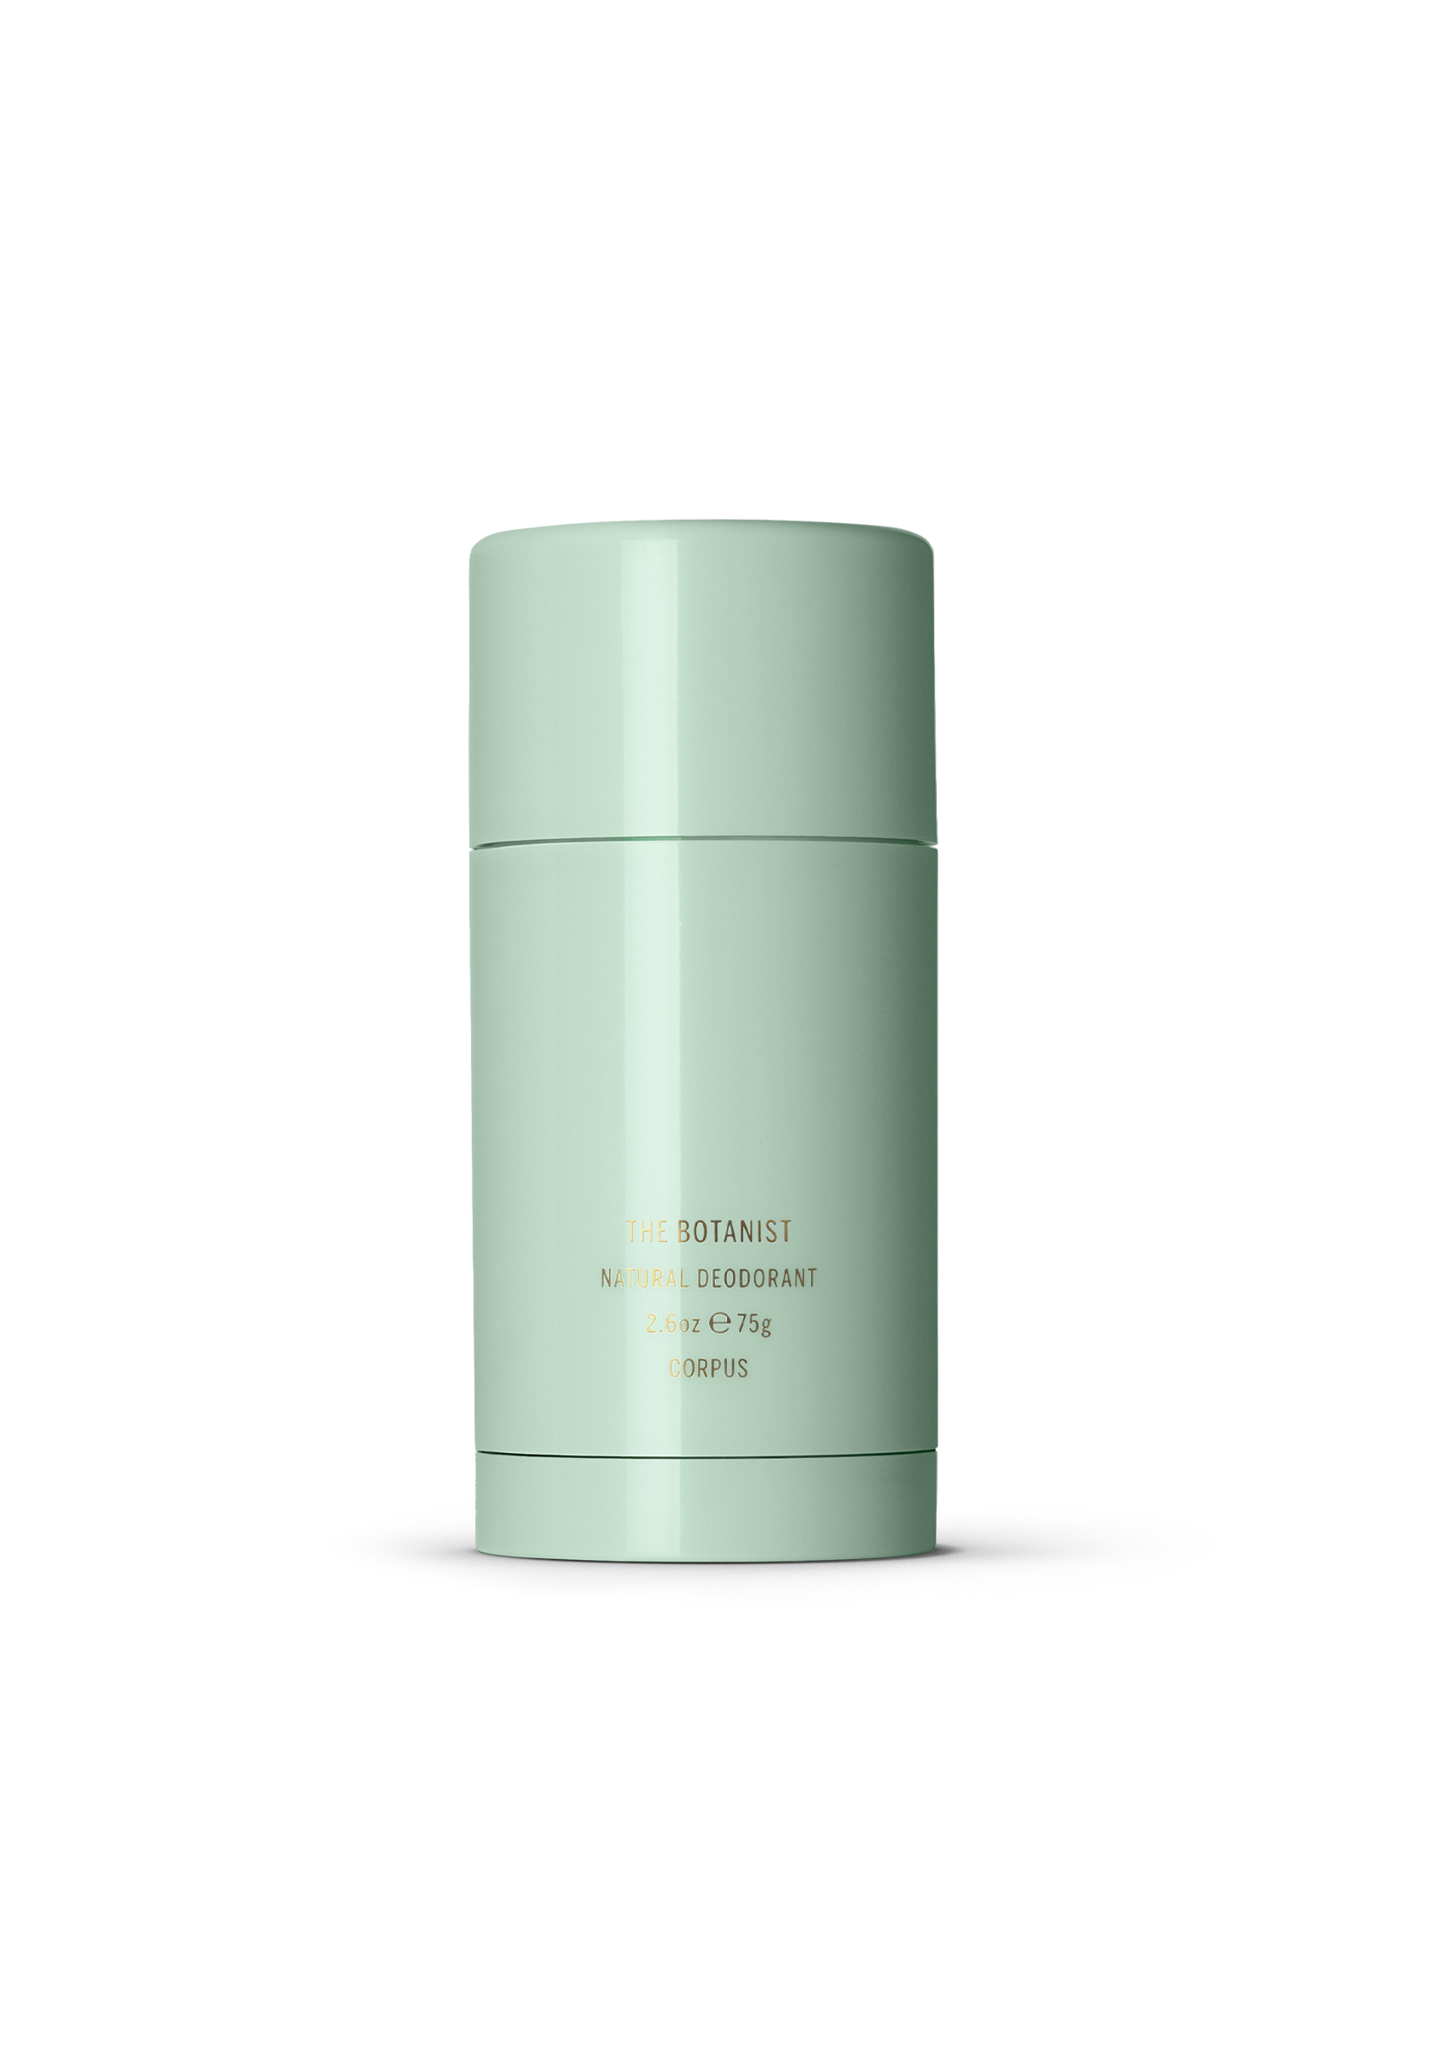 Corpus Natural Deodorant: The Botanist 2.6oz